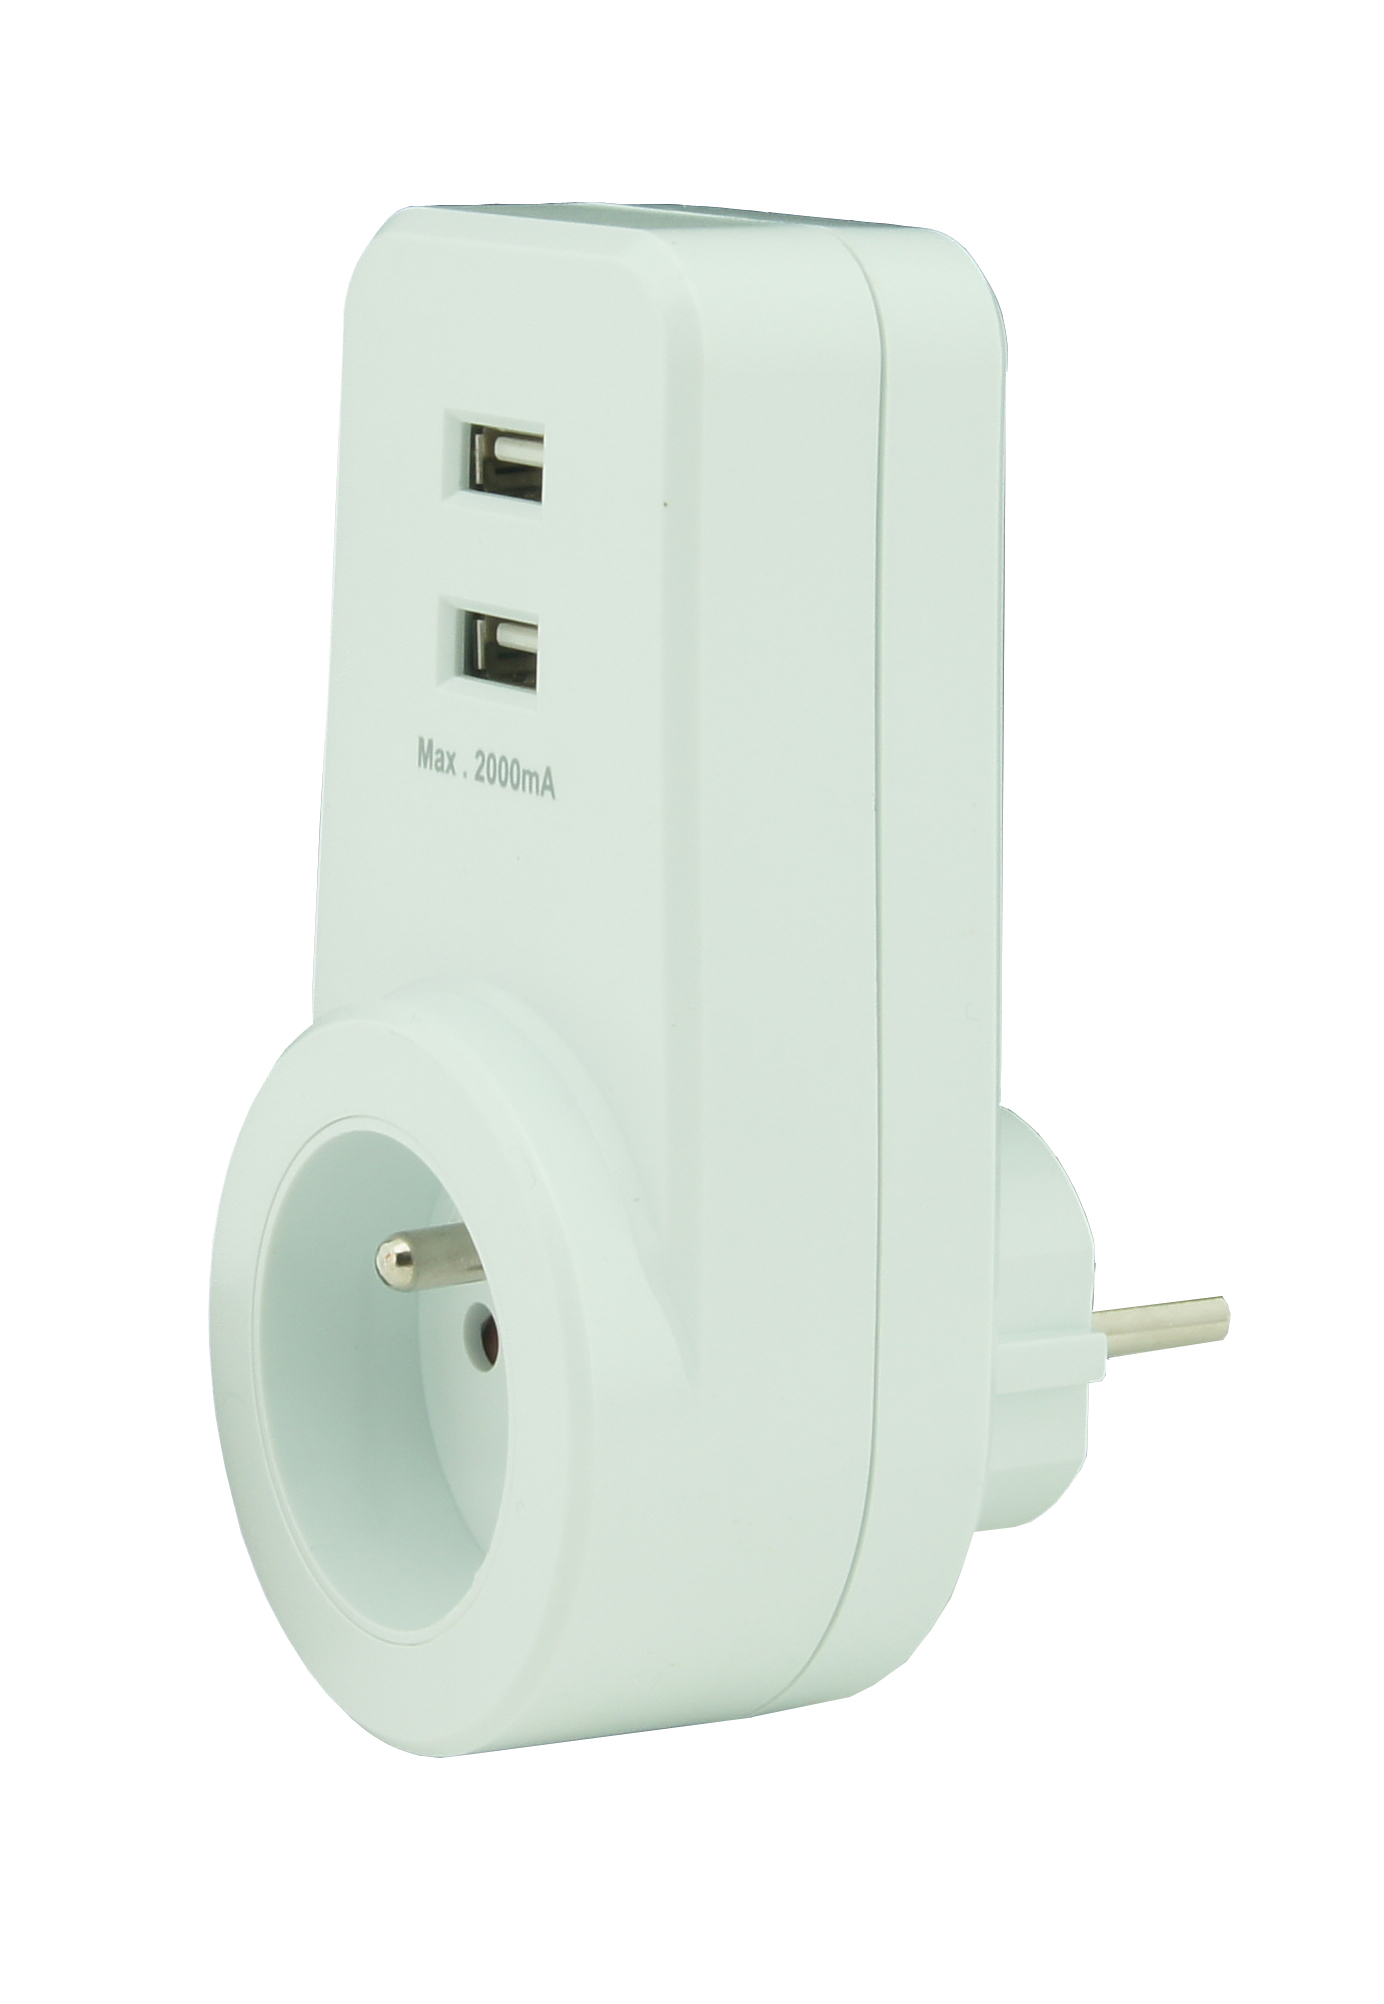 Transit plug with 2 USB outlets